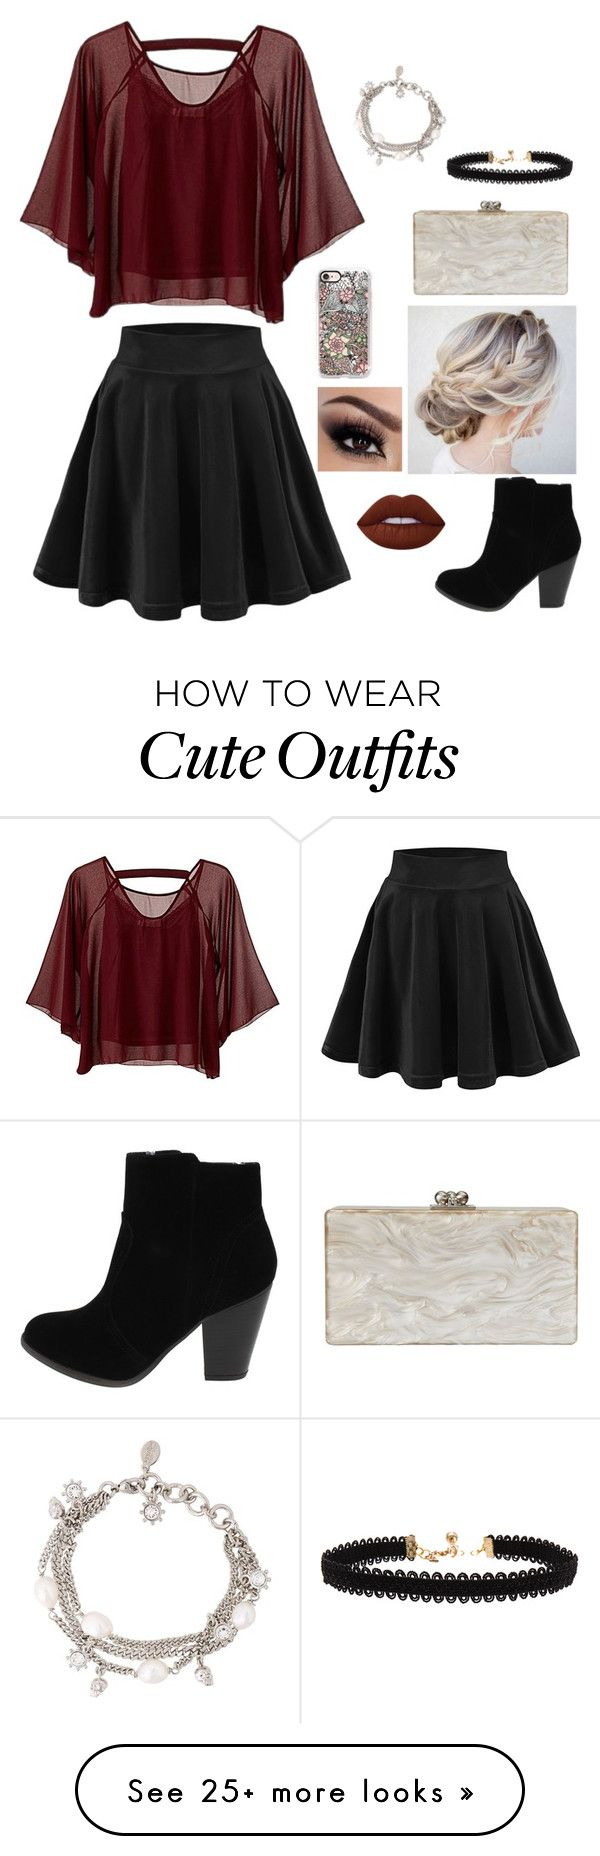 """Fun Night Out At A Party With Friends!! (With A cute Outfit!)"" by graciesmiles1324 on Polyvore featuring Traffic People, Lime Crime, Casetify, Vanessa Mooney, Alexander McQueen and Edie Parker"